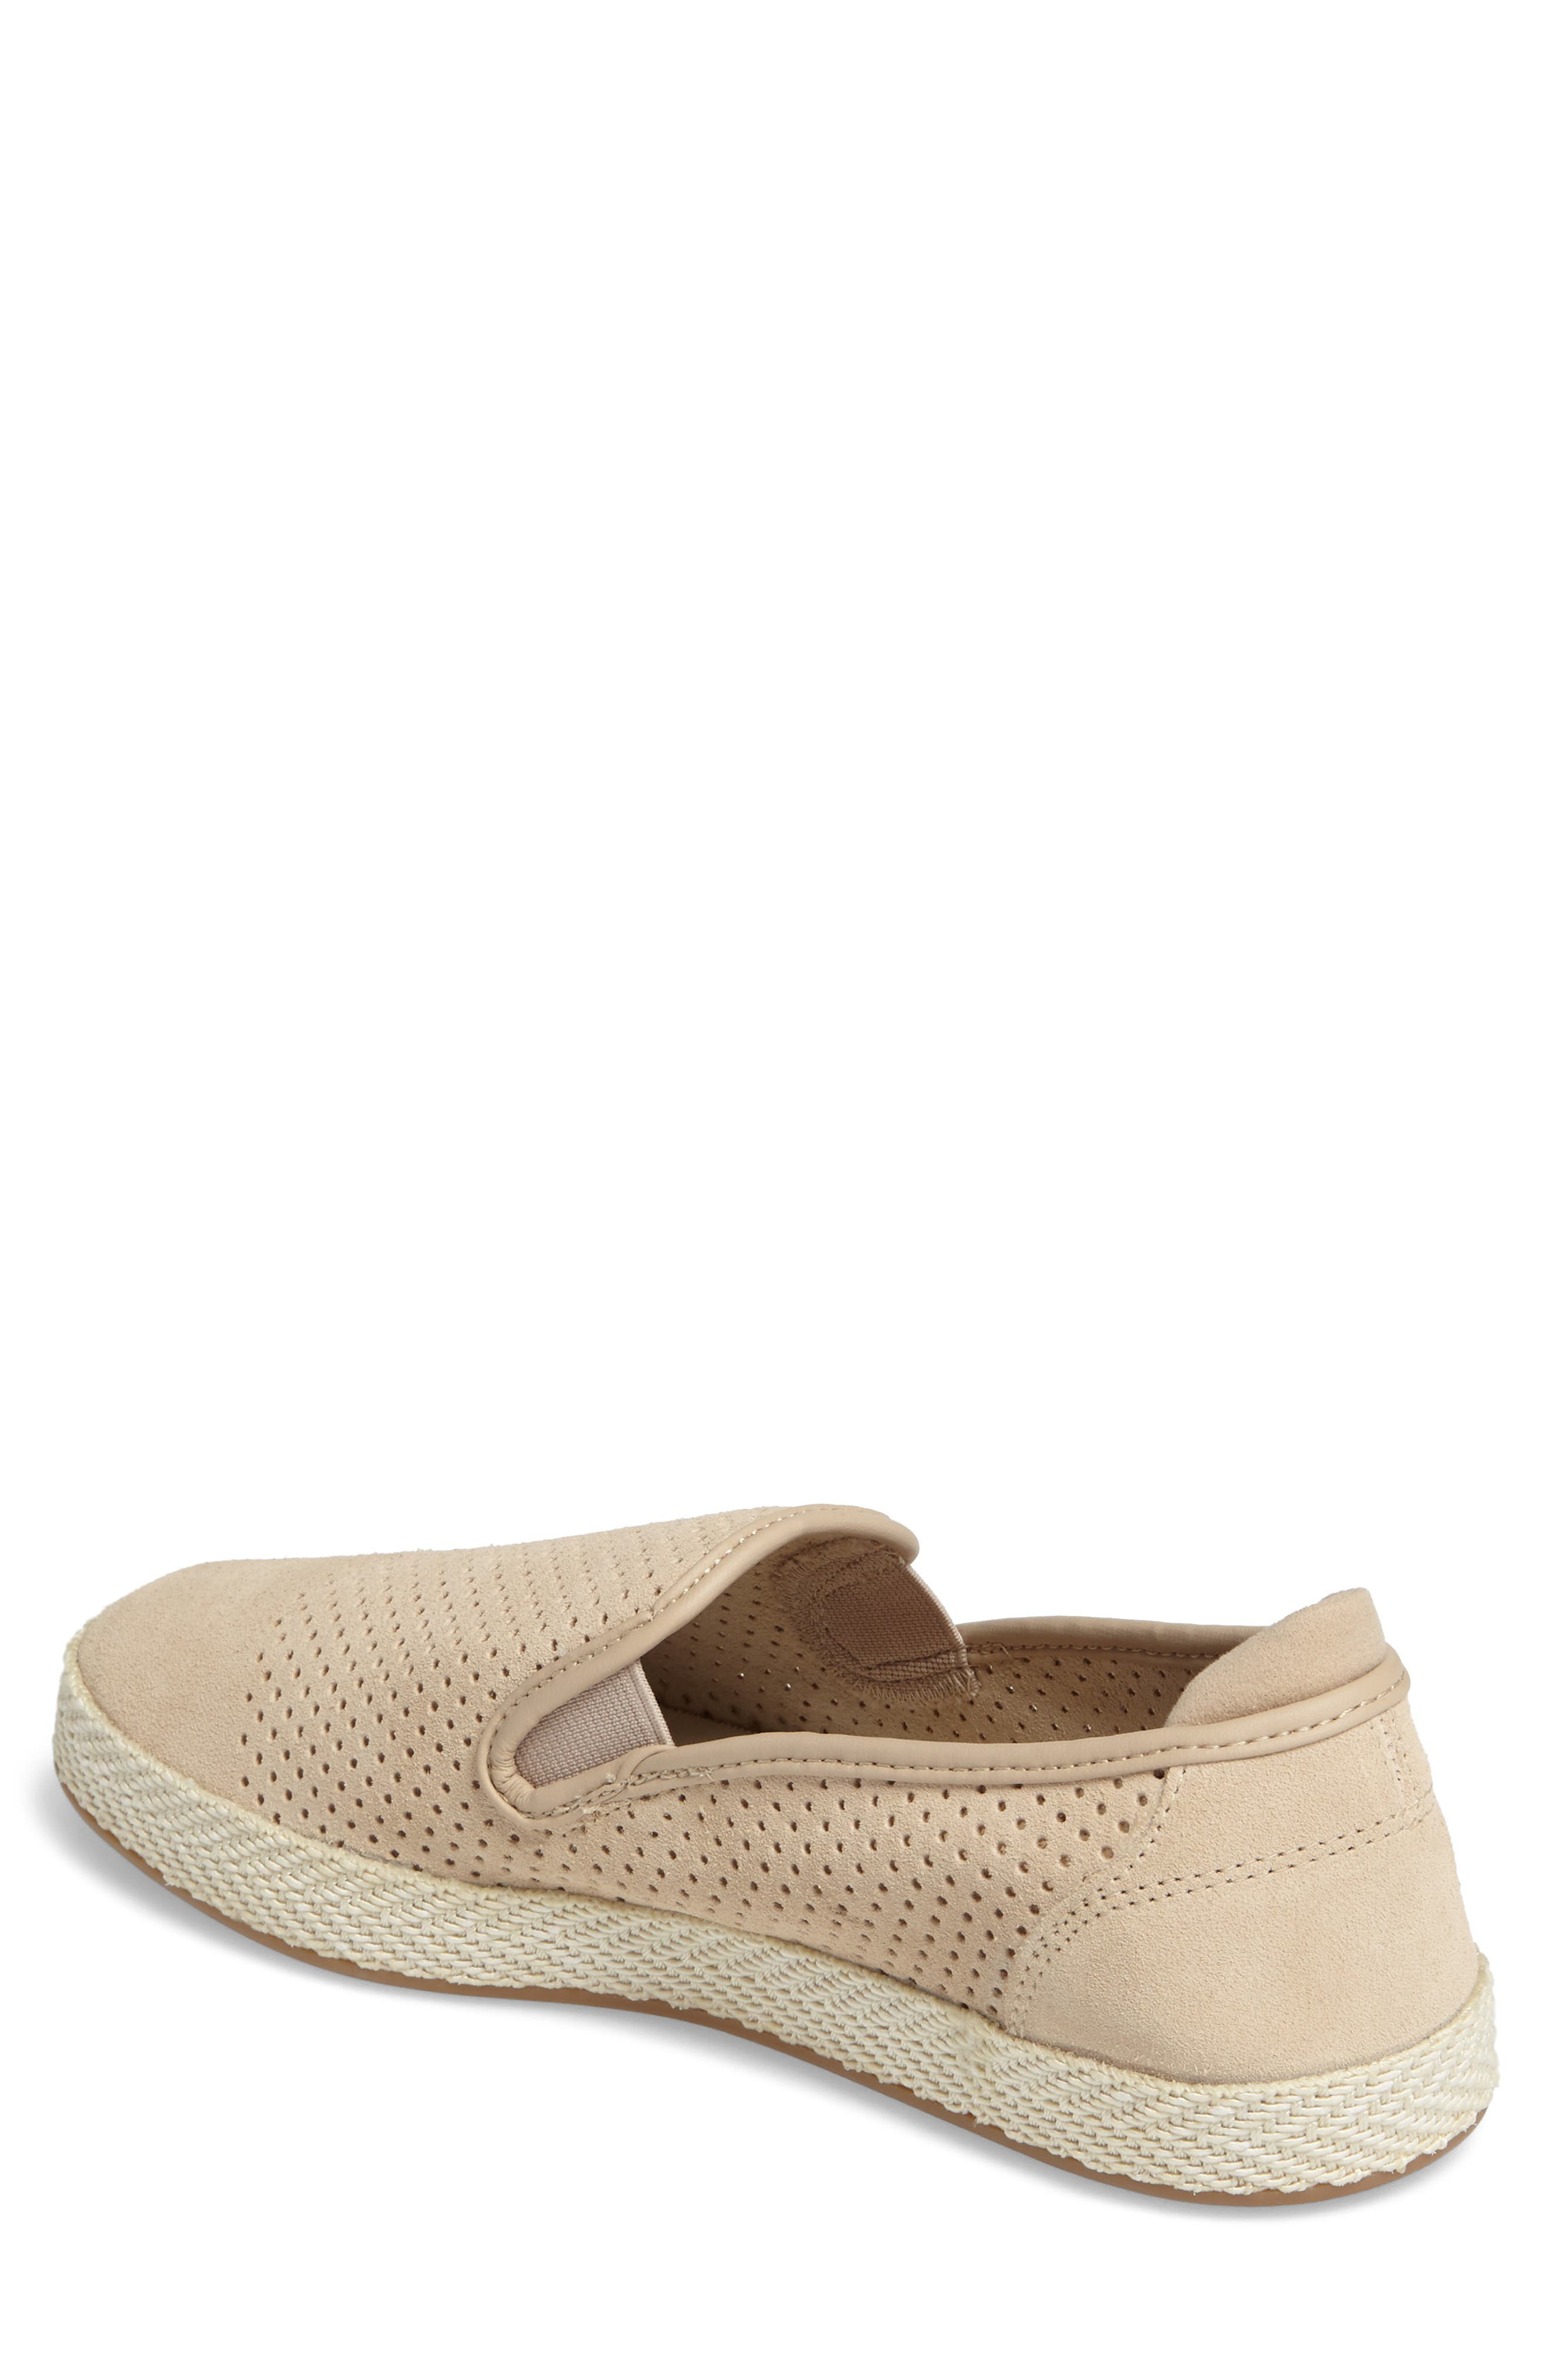 Tombre Slip-On,                             Alternate thumbnail 2, color,                             Natural Suede